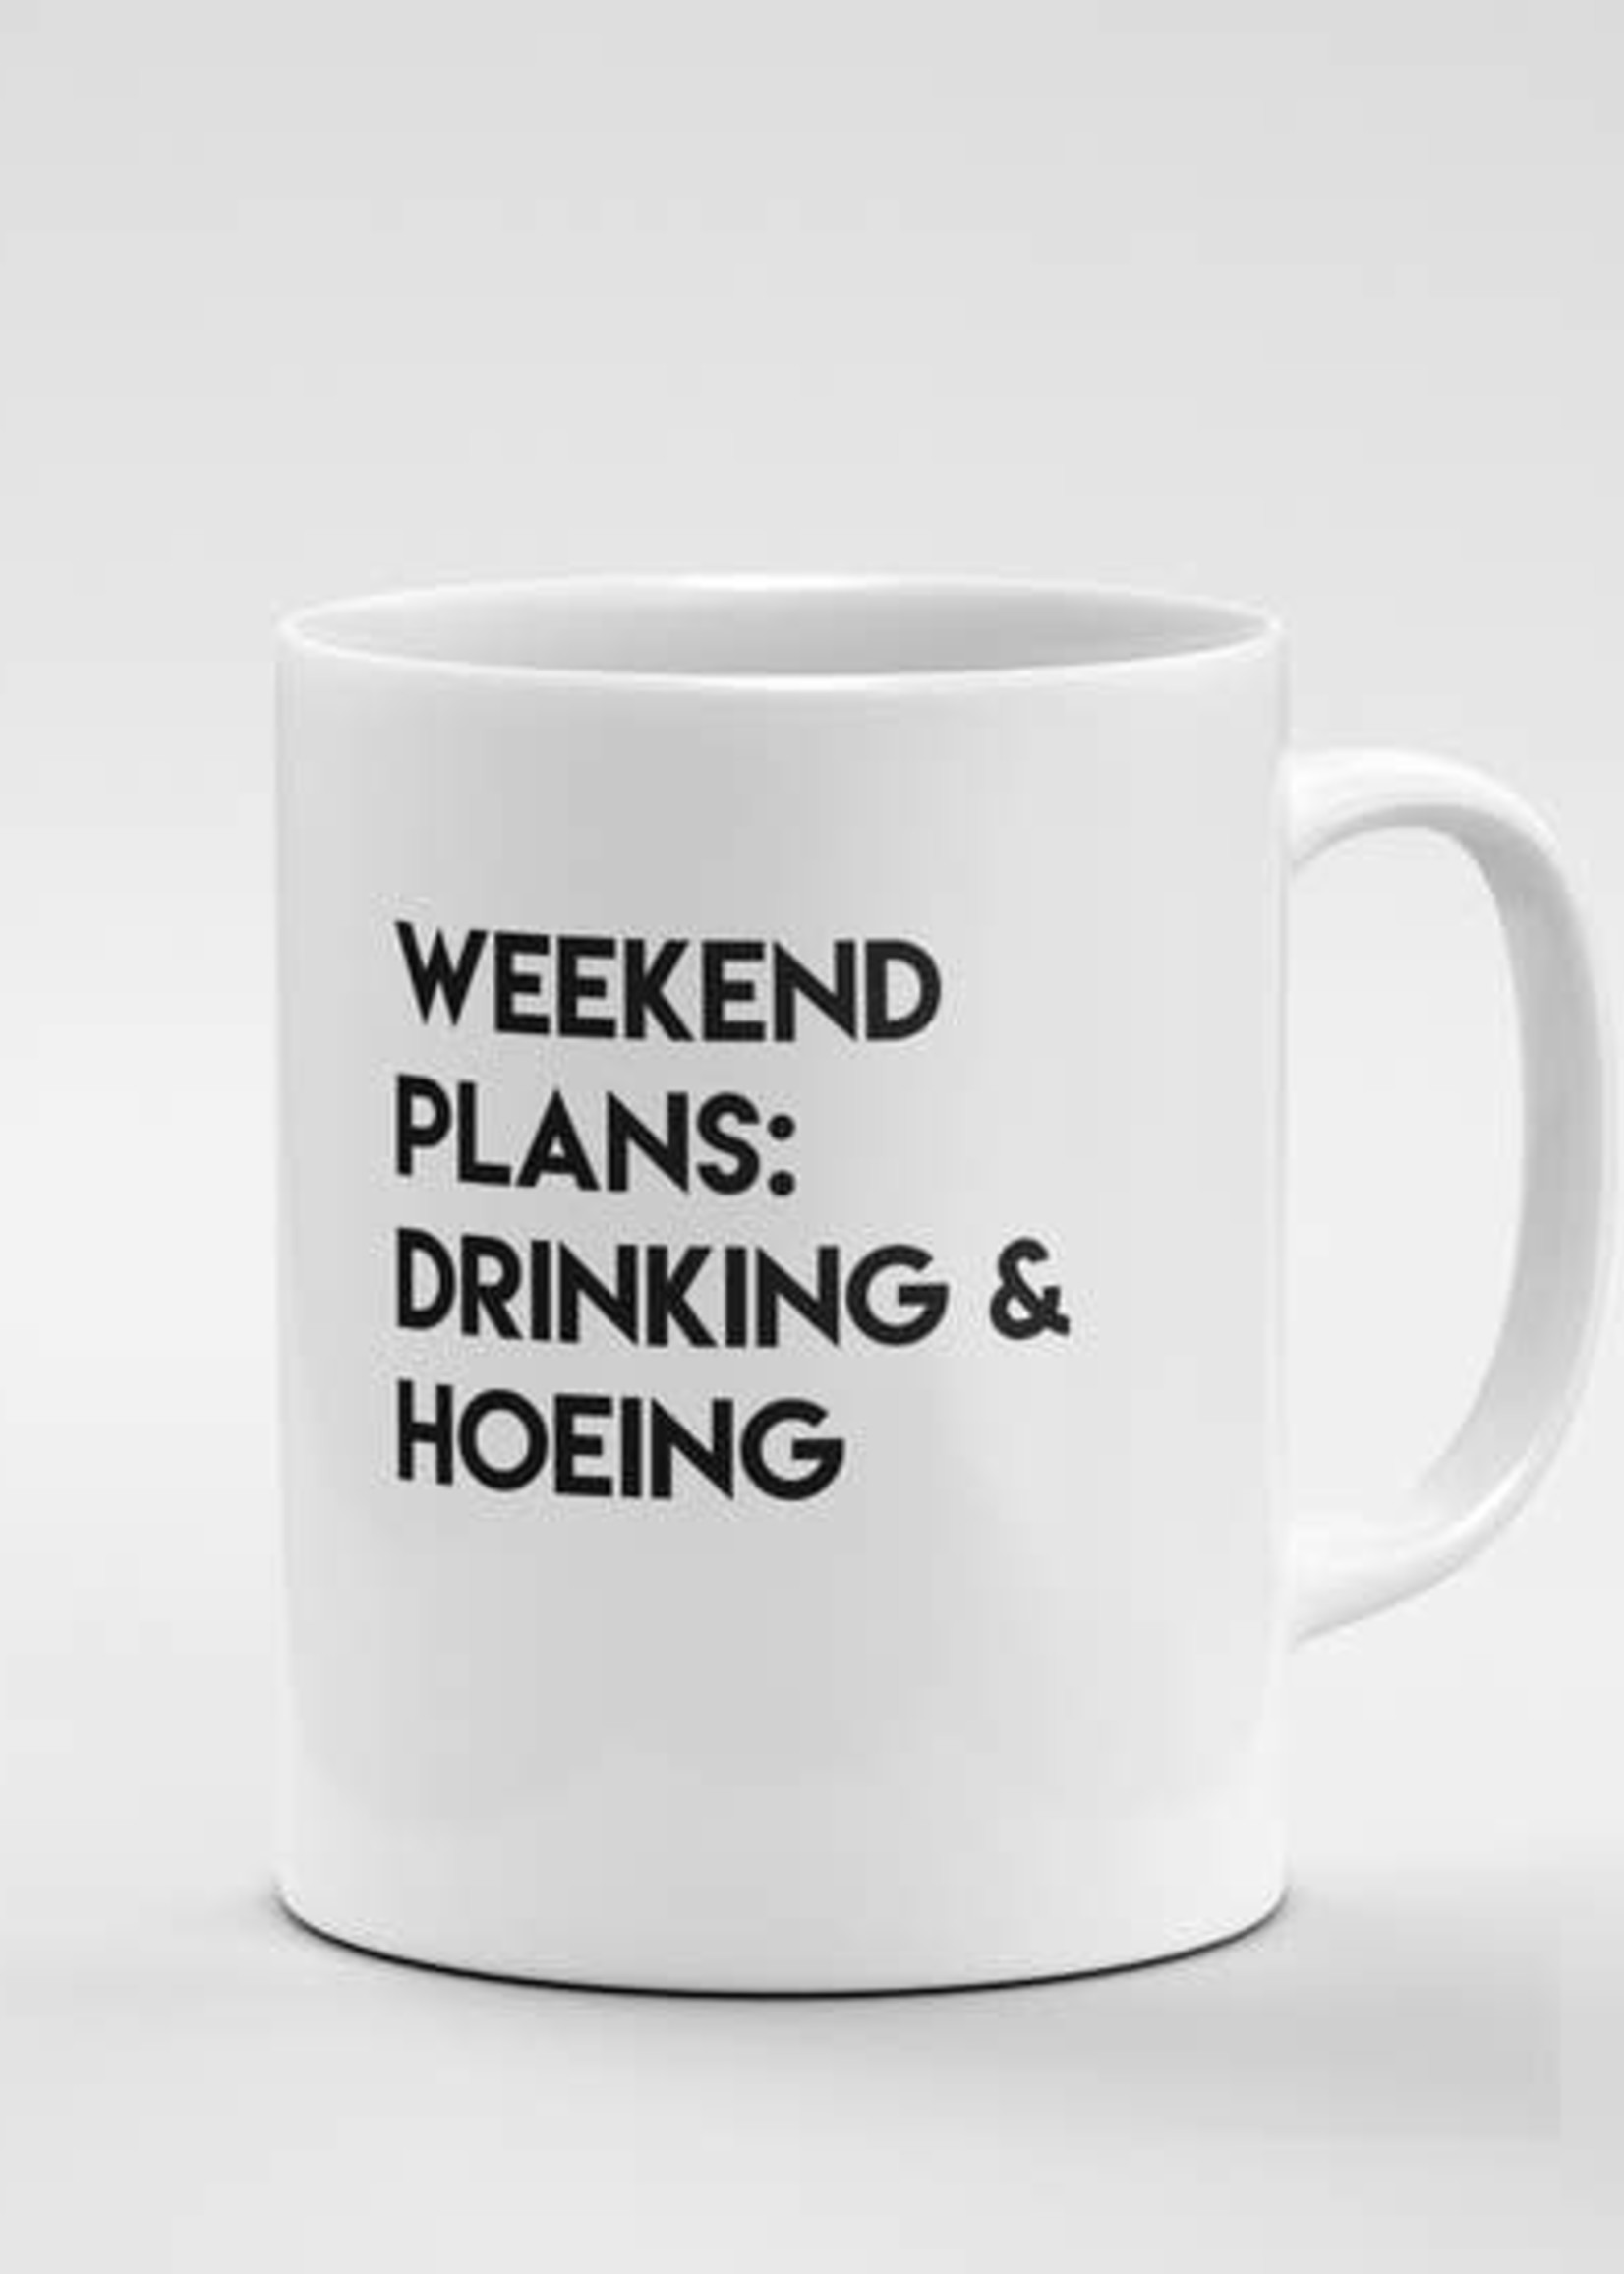 CRIMSON & CLOVER CRIMSON AND CLOVER WEEKEND PLANS MUG